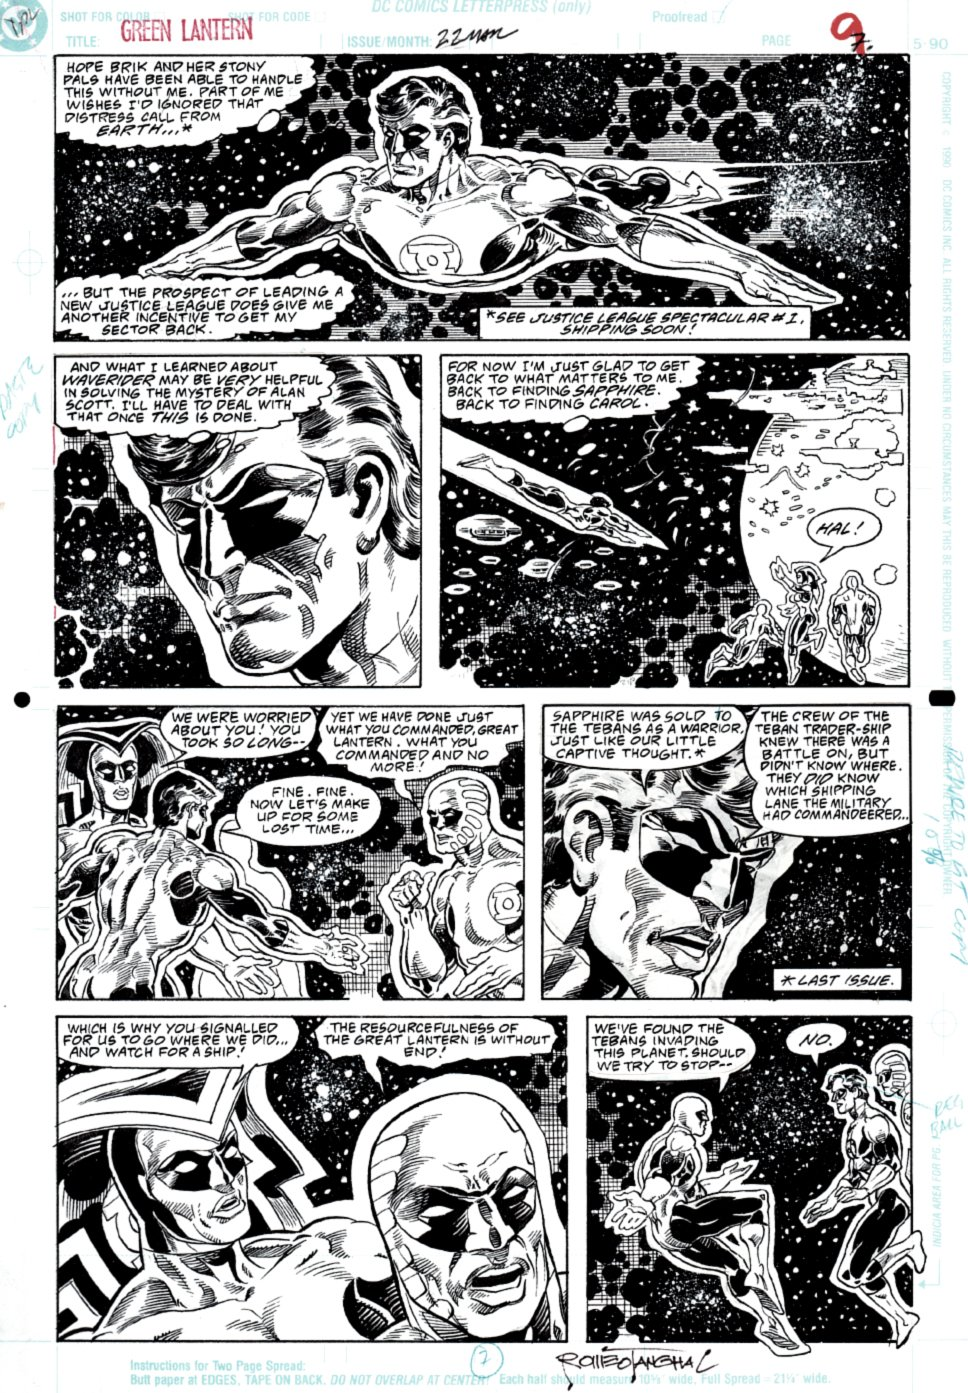 Green Lantern 22 p 7 (SOLD LIVE ON 'DUELING DEALERS OF COMIC ART' EPISODE #21 PODCAST ON 6-9-2021 (RE-WATCH THIS FUNNY ART SELLING SHOW HERE)